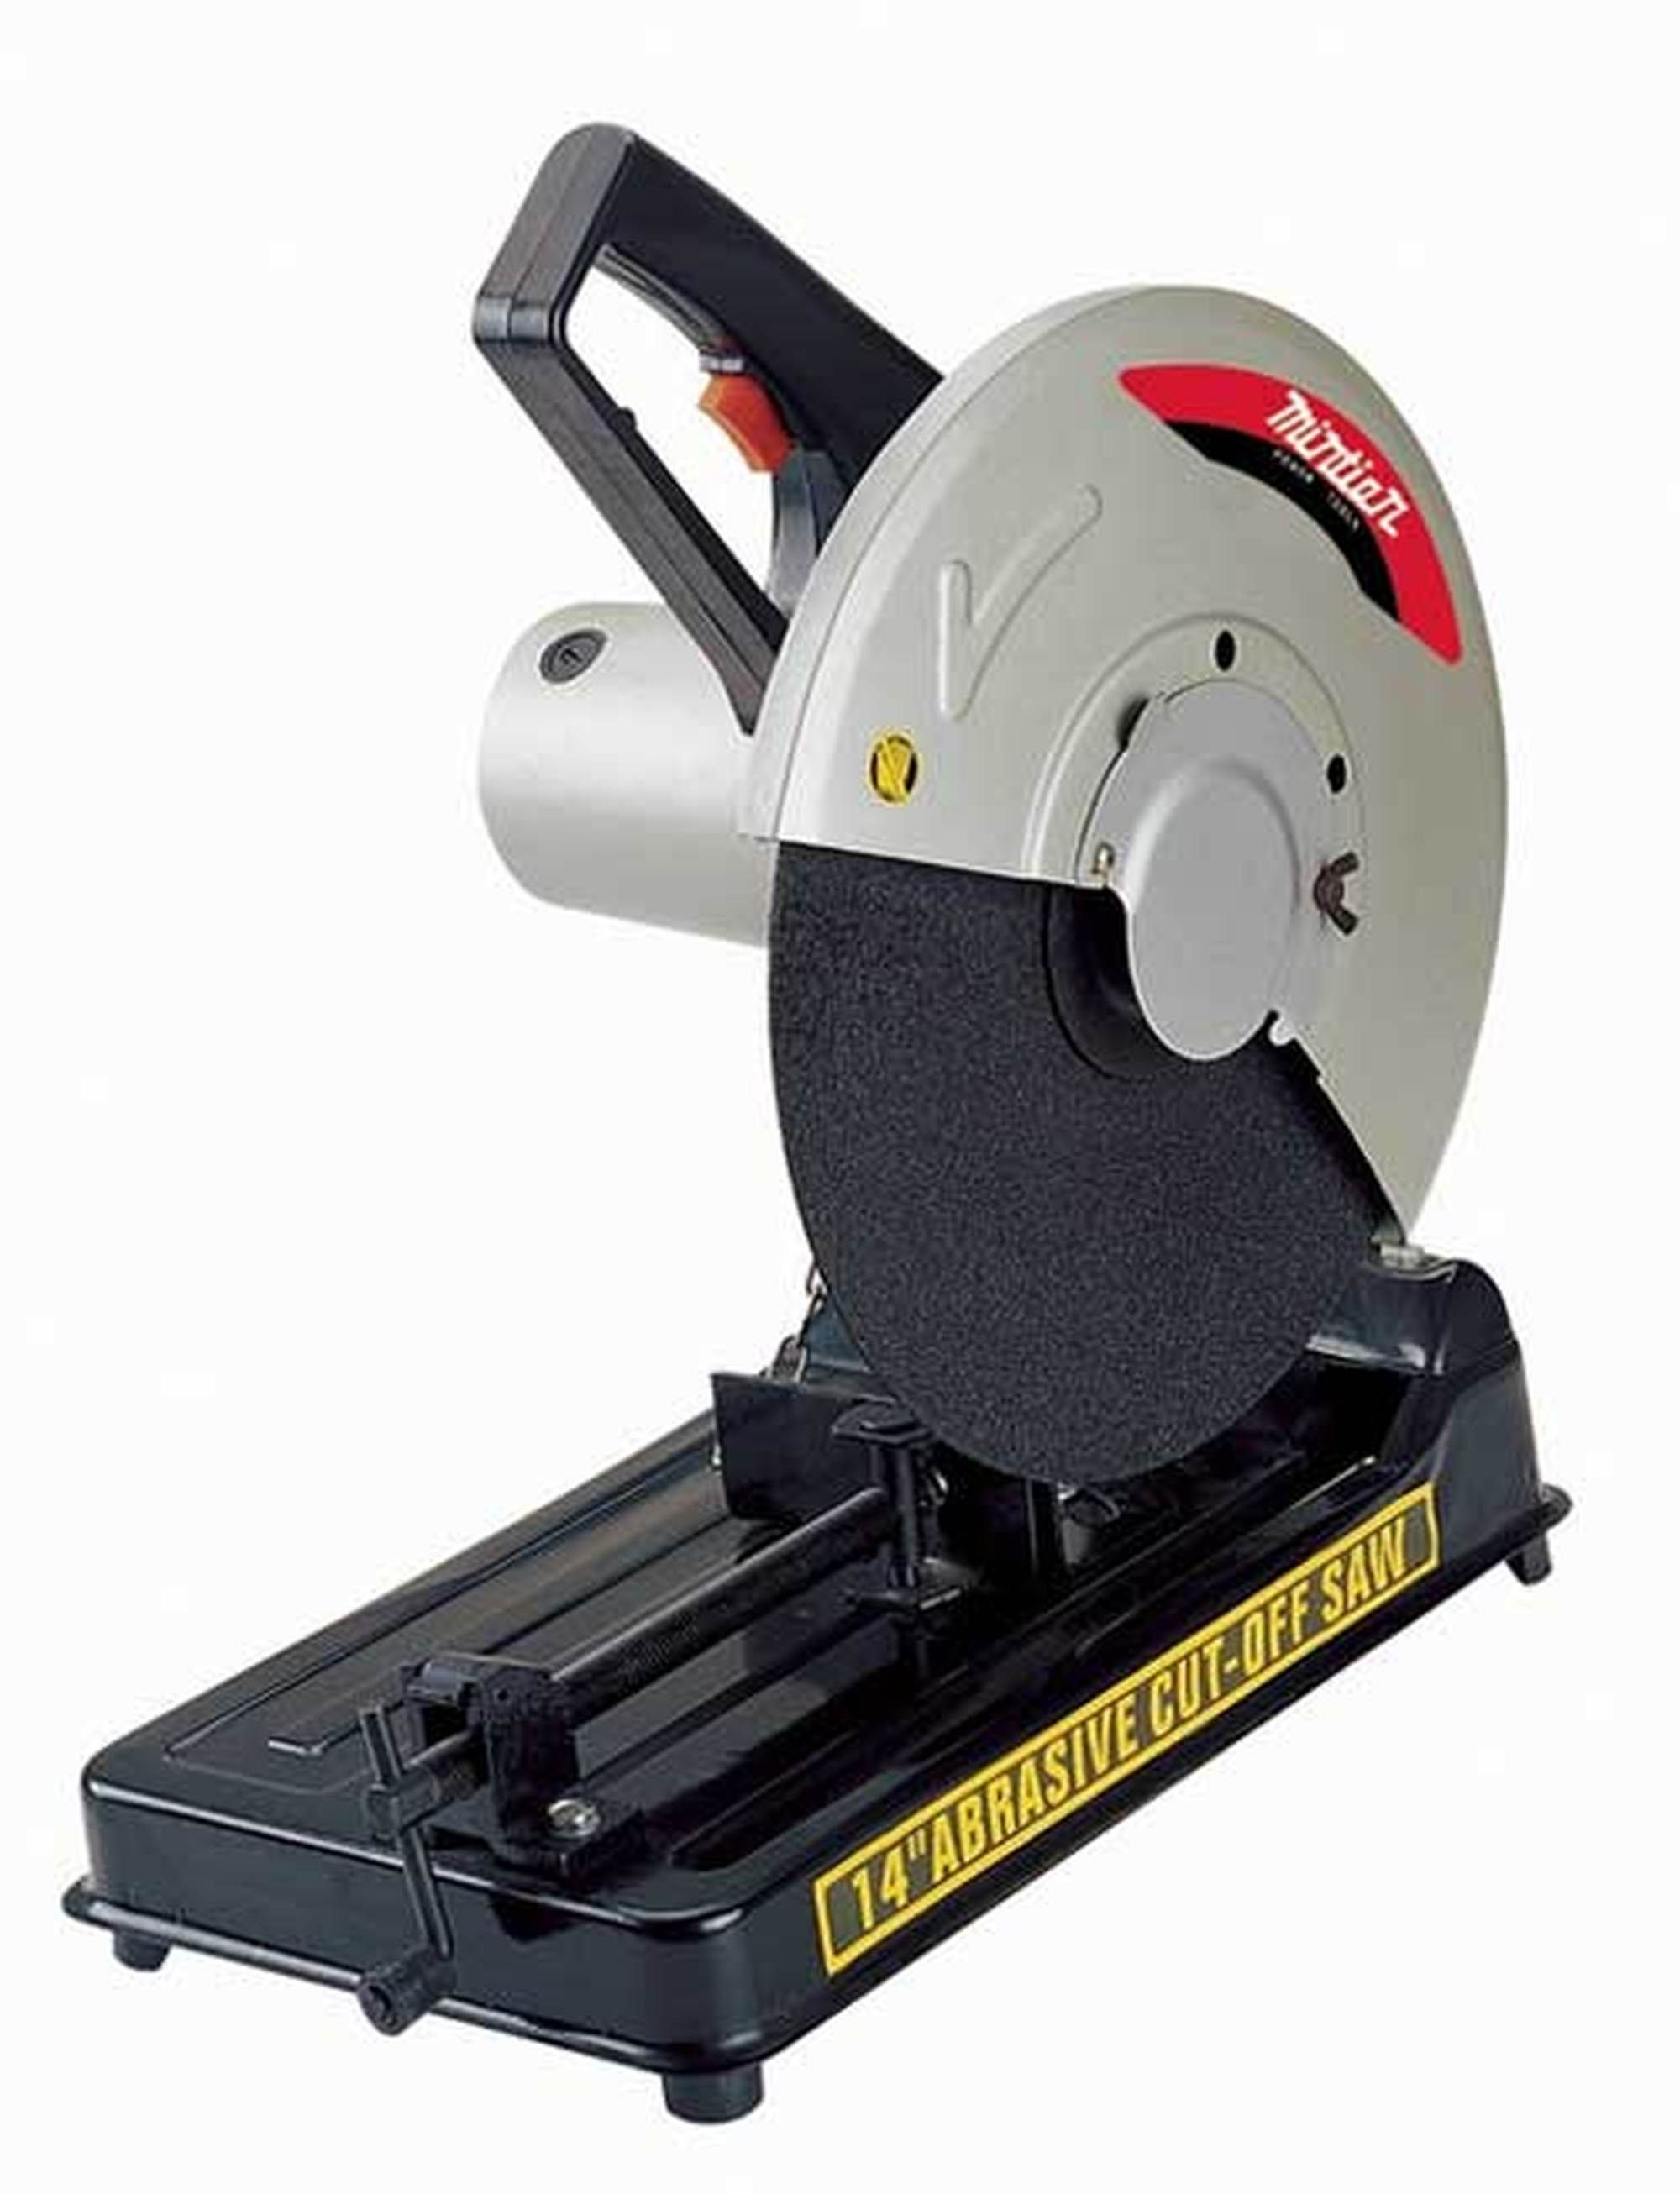 Cut-off saw 14  (Metal Cutting) for rent - Easily portable and ideal for cutting metal pipes rods and sections on site. Malta Rentals Directory Product By ...  sc 1 st  Pinterest & Article headline | Pinterest | Renting and Cuttings